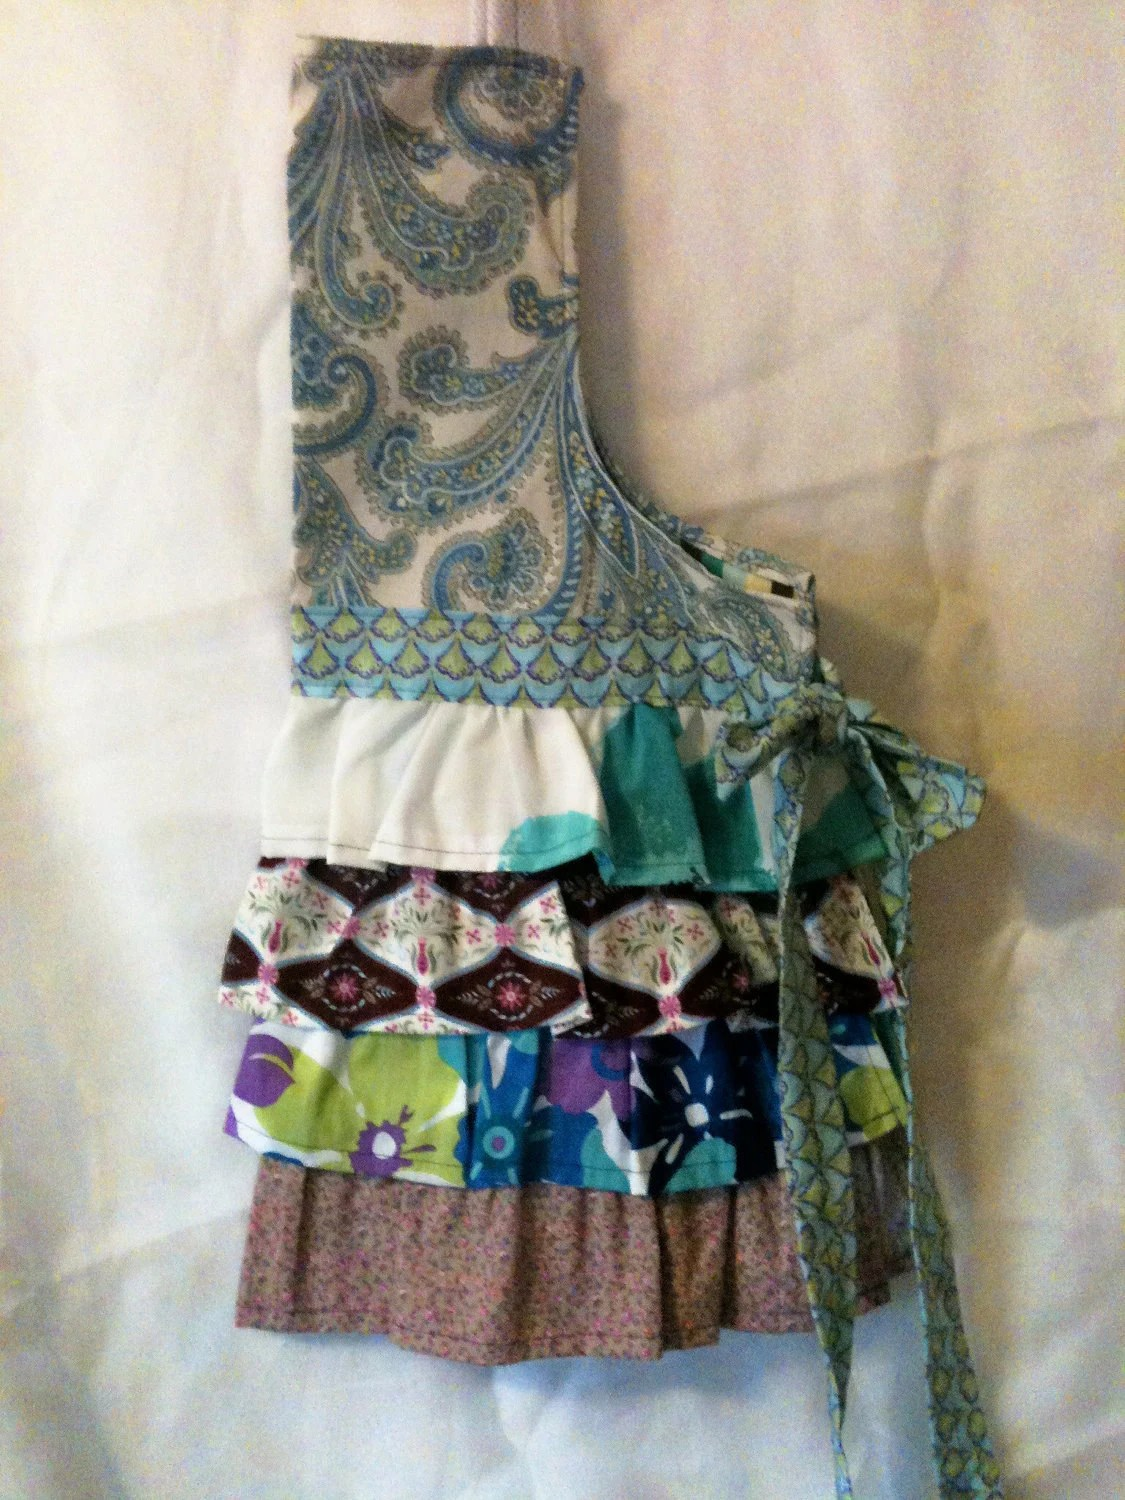 Field of Flowers Ruffles- A Flirty Feminine Purple, Turquoise & Lime Floral Apron